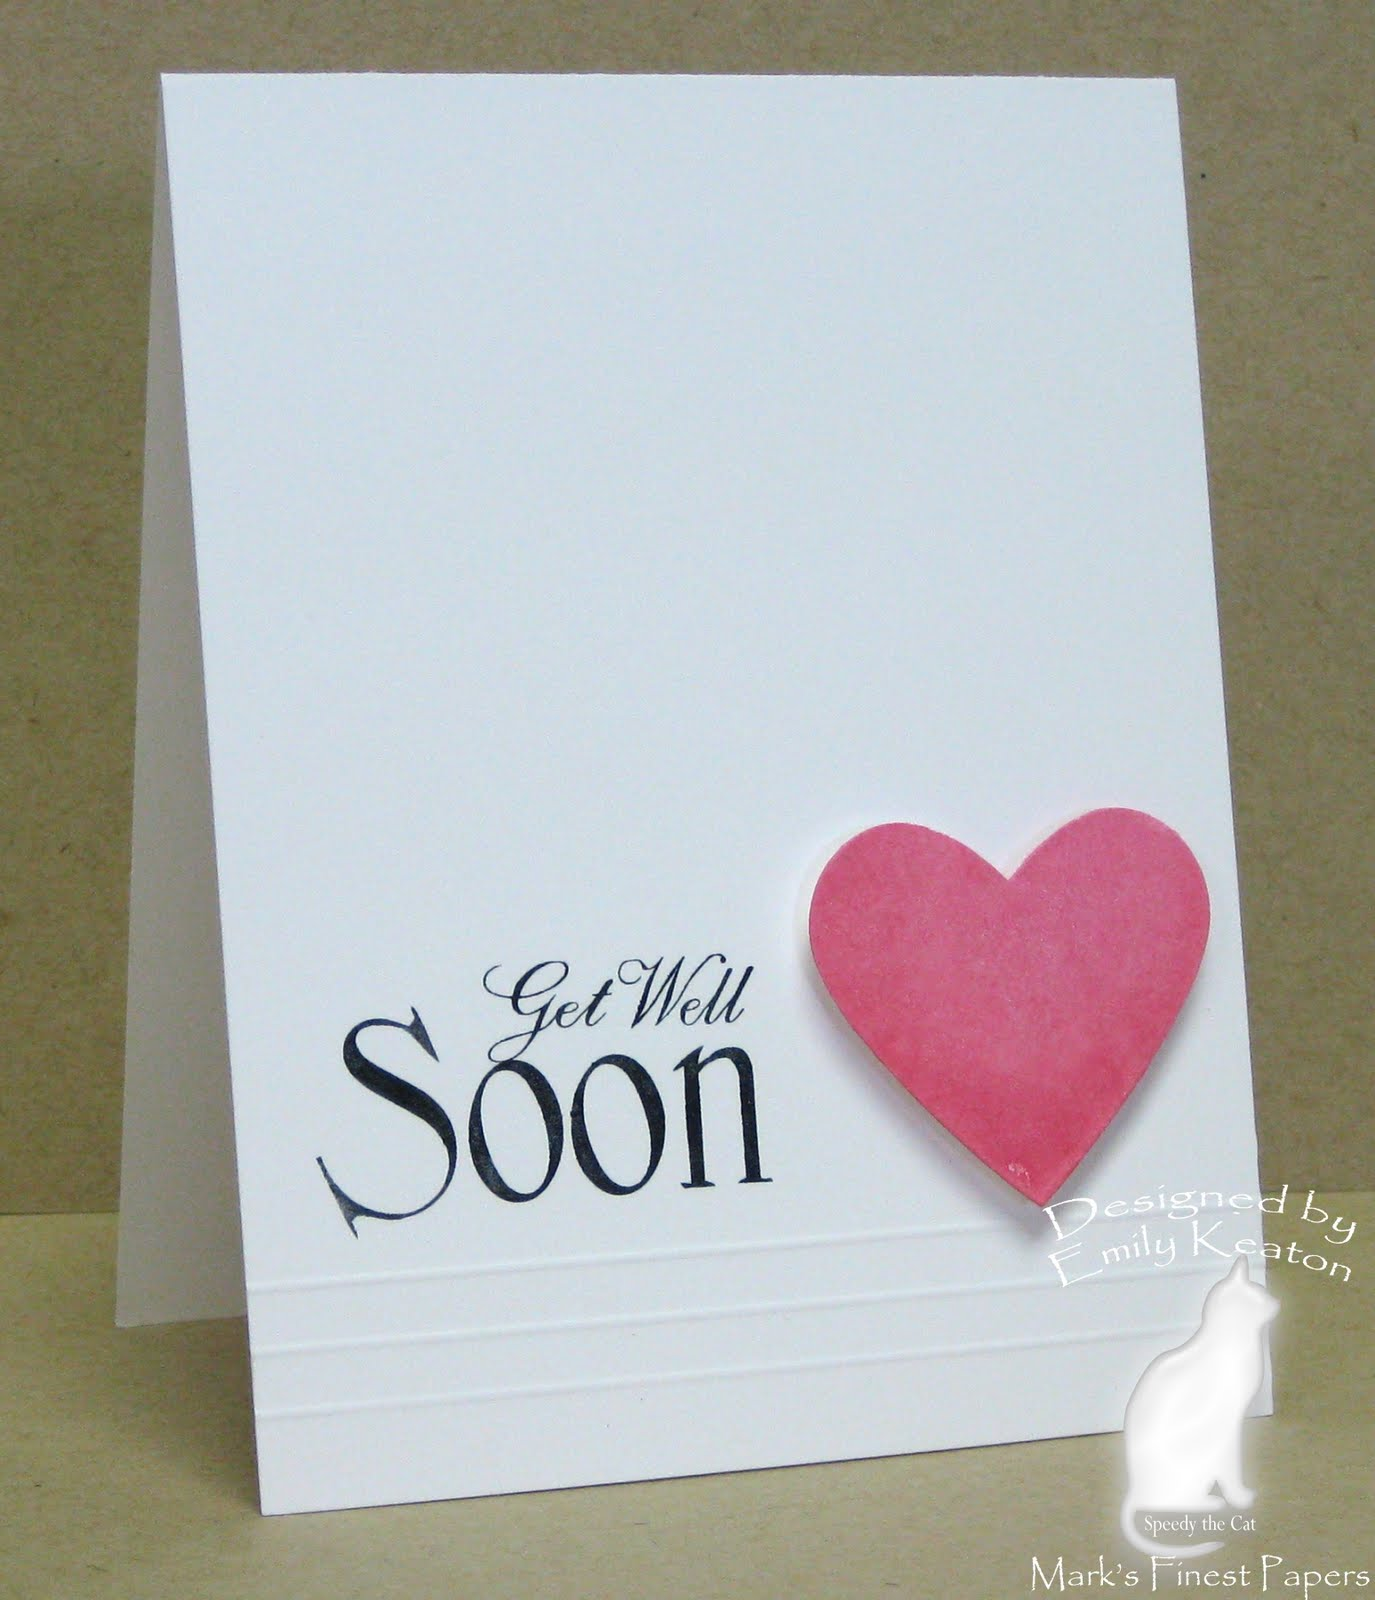 Get Well Soon Love Greeting E-Card Image